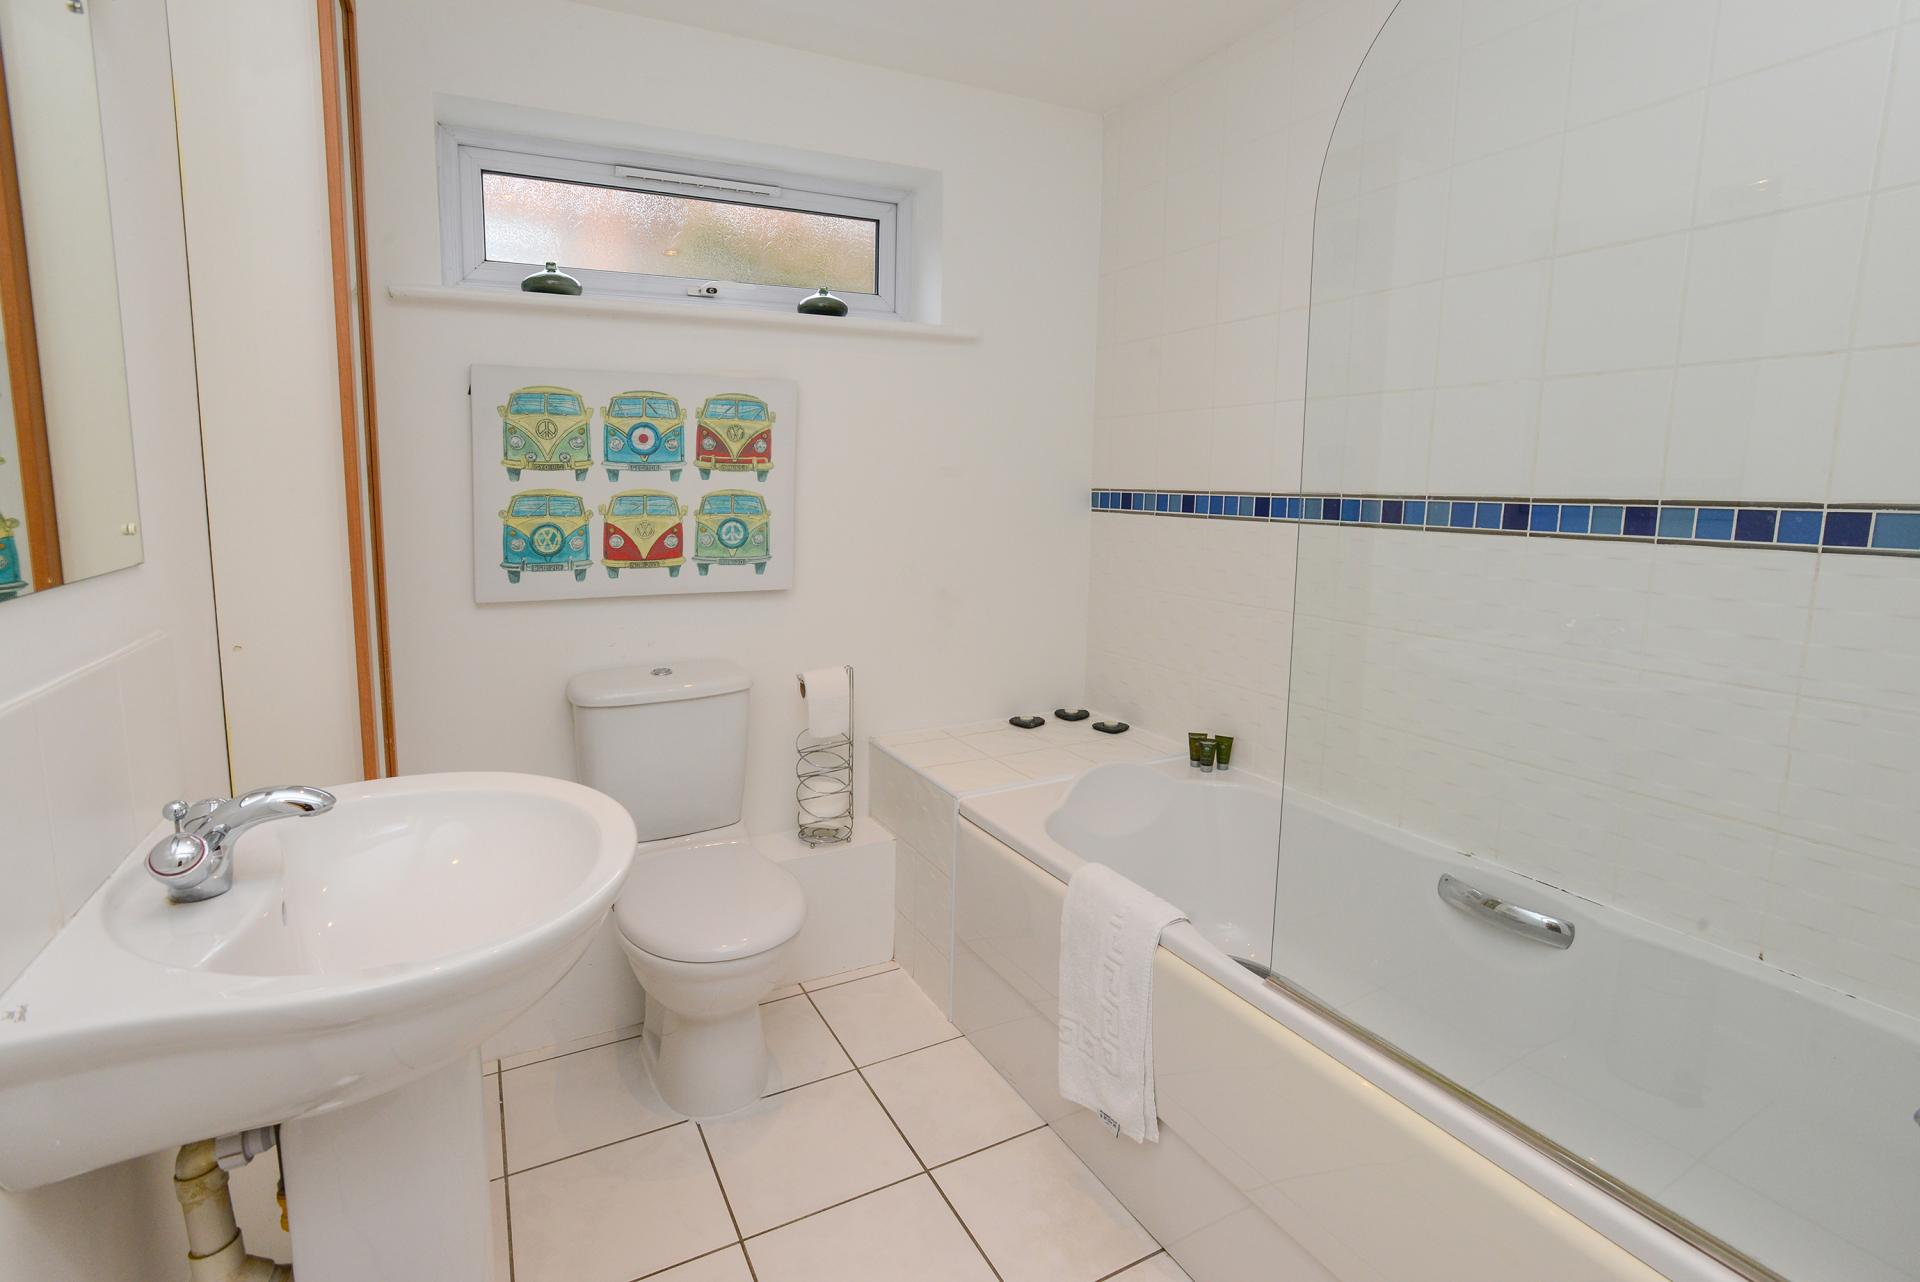 Bathroom at Edward's Court Apartment, West Bridgford, Nottingham - Citybase Apartments